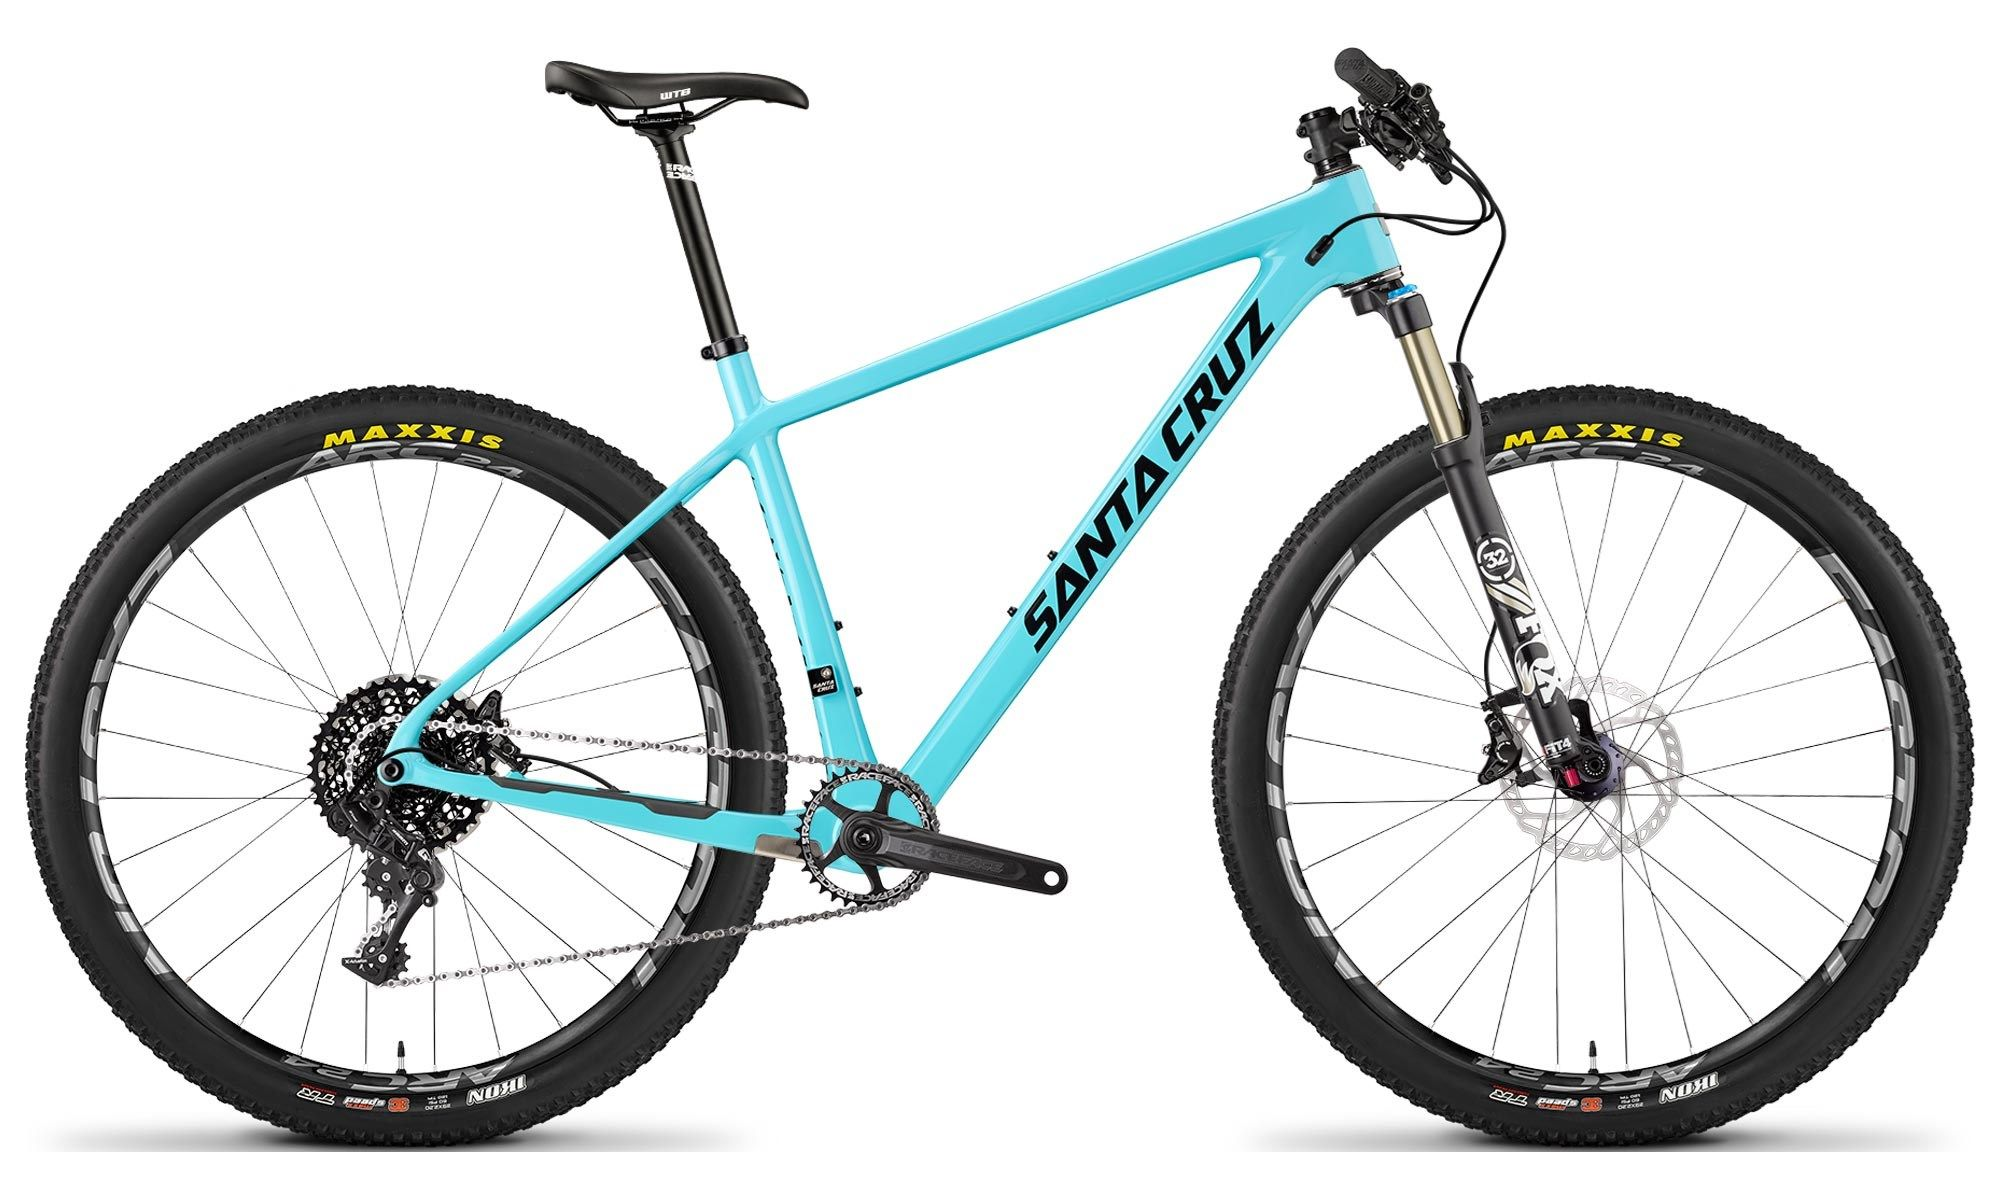 2016 Santa Cruz Highball 29 C S Carbon Hardtail Mountain Bike ...